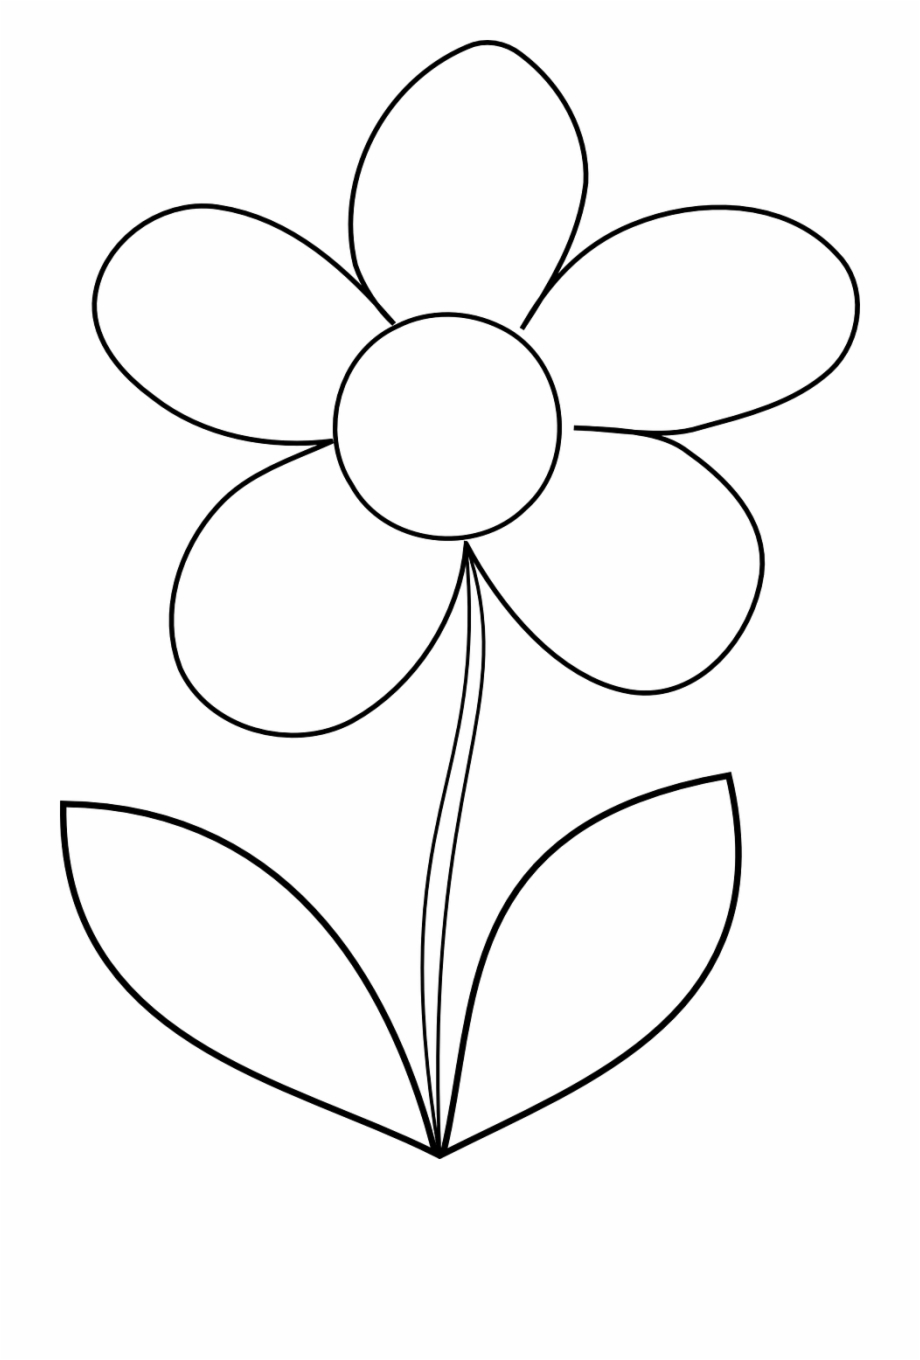 Flower Daisy Spring Outline Png Image - Easy Printable ...